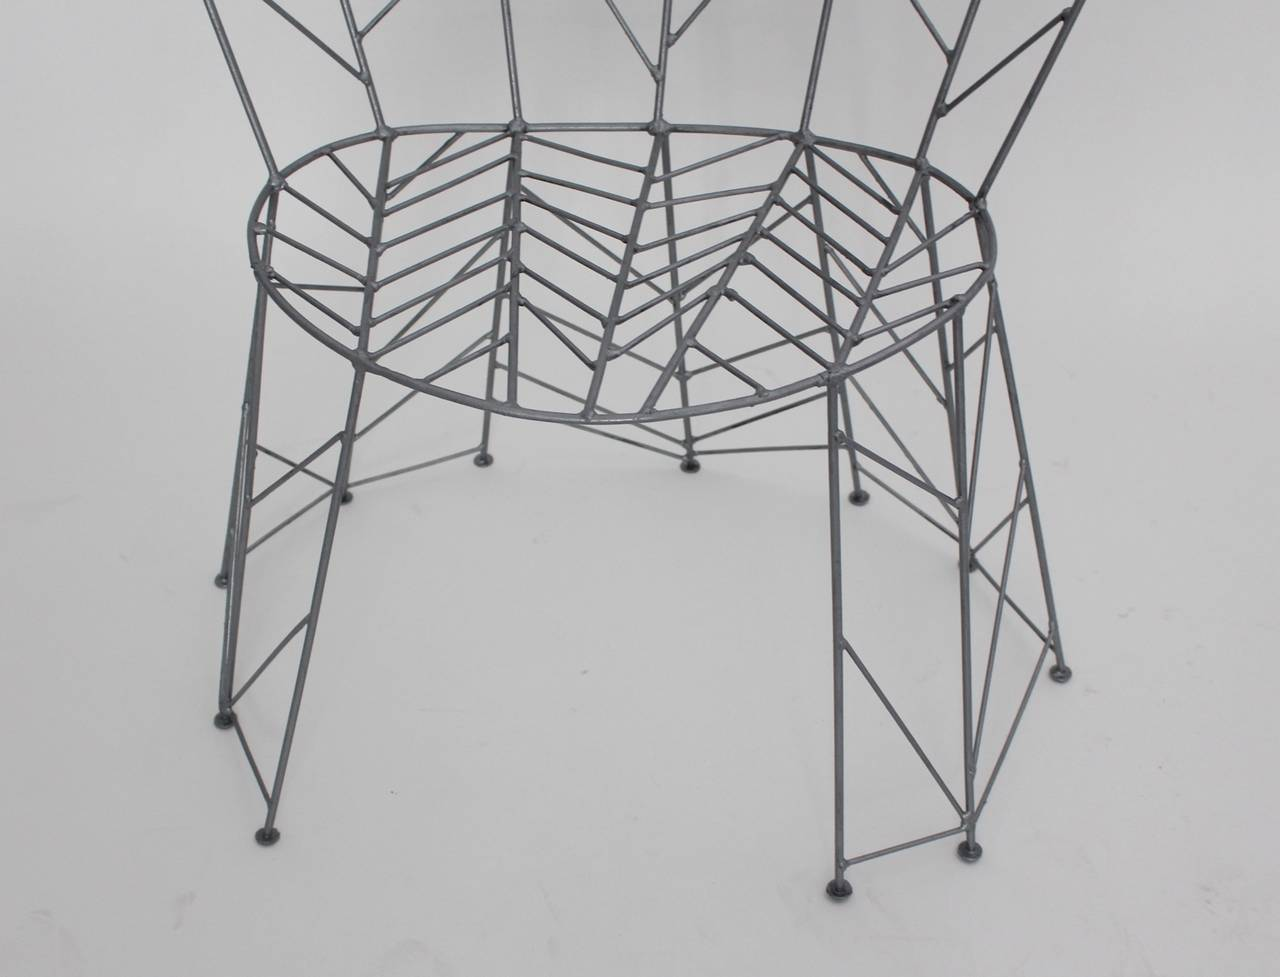 Modernist Metal Vintage Chairs Pupeny by Bohuslav Horak 1988 Czech Republic For Sale 4